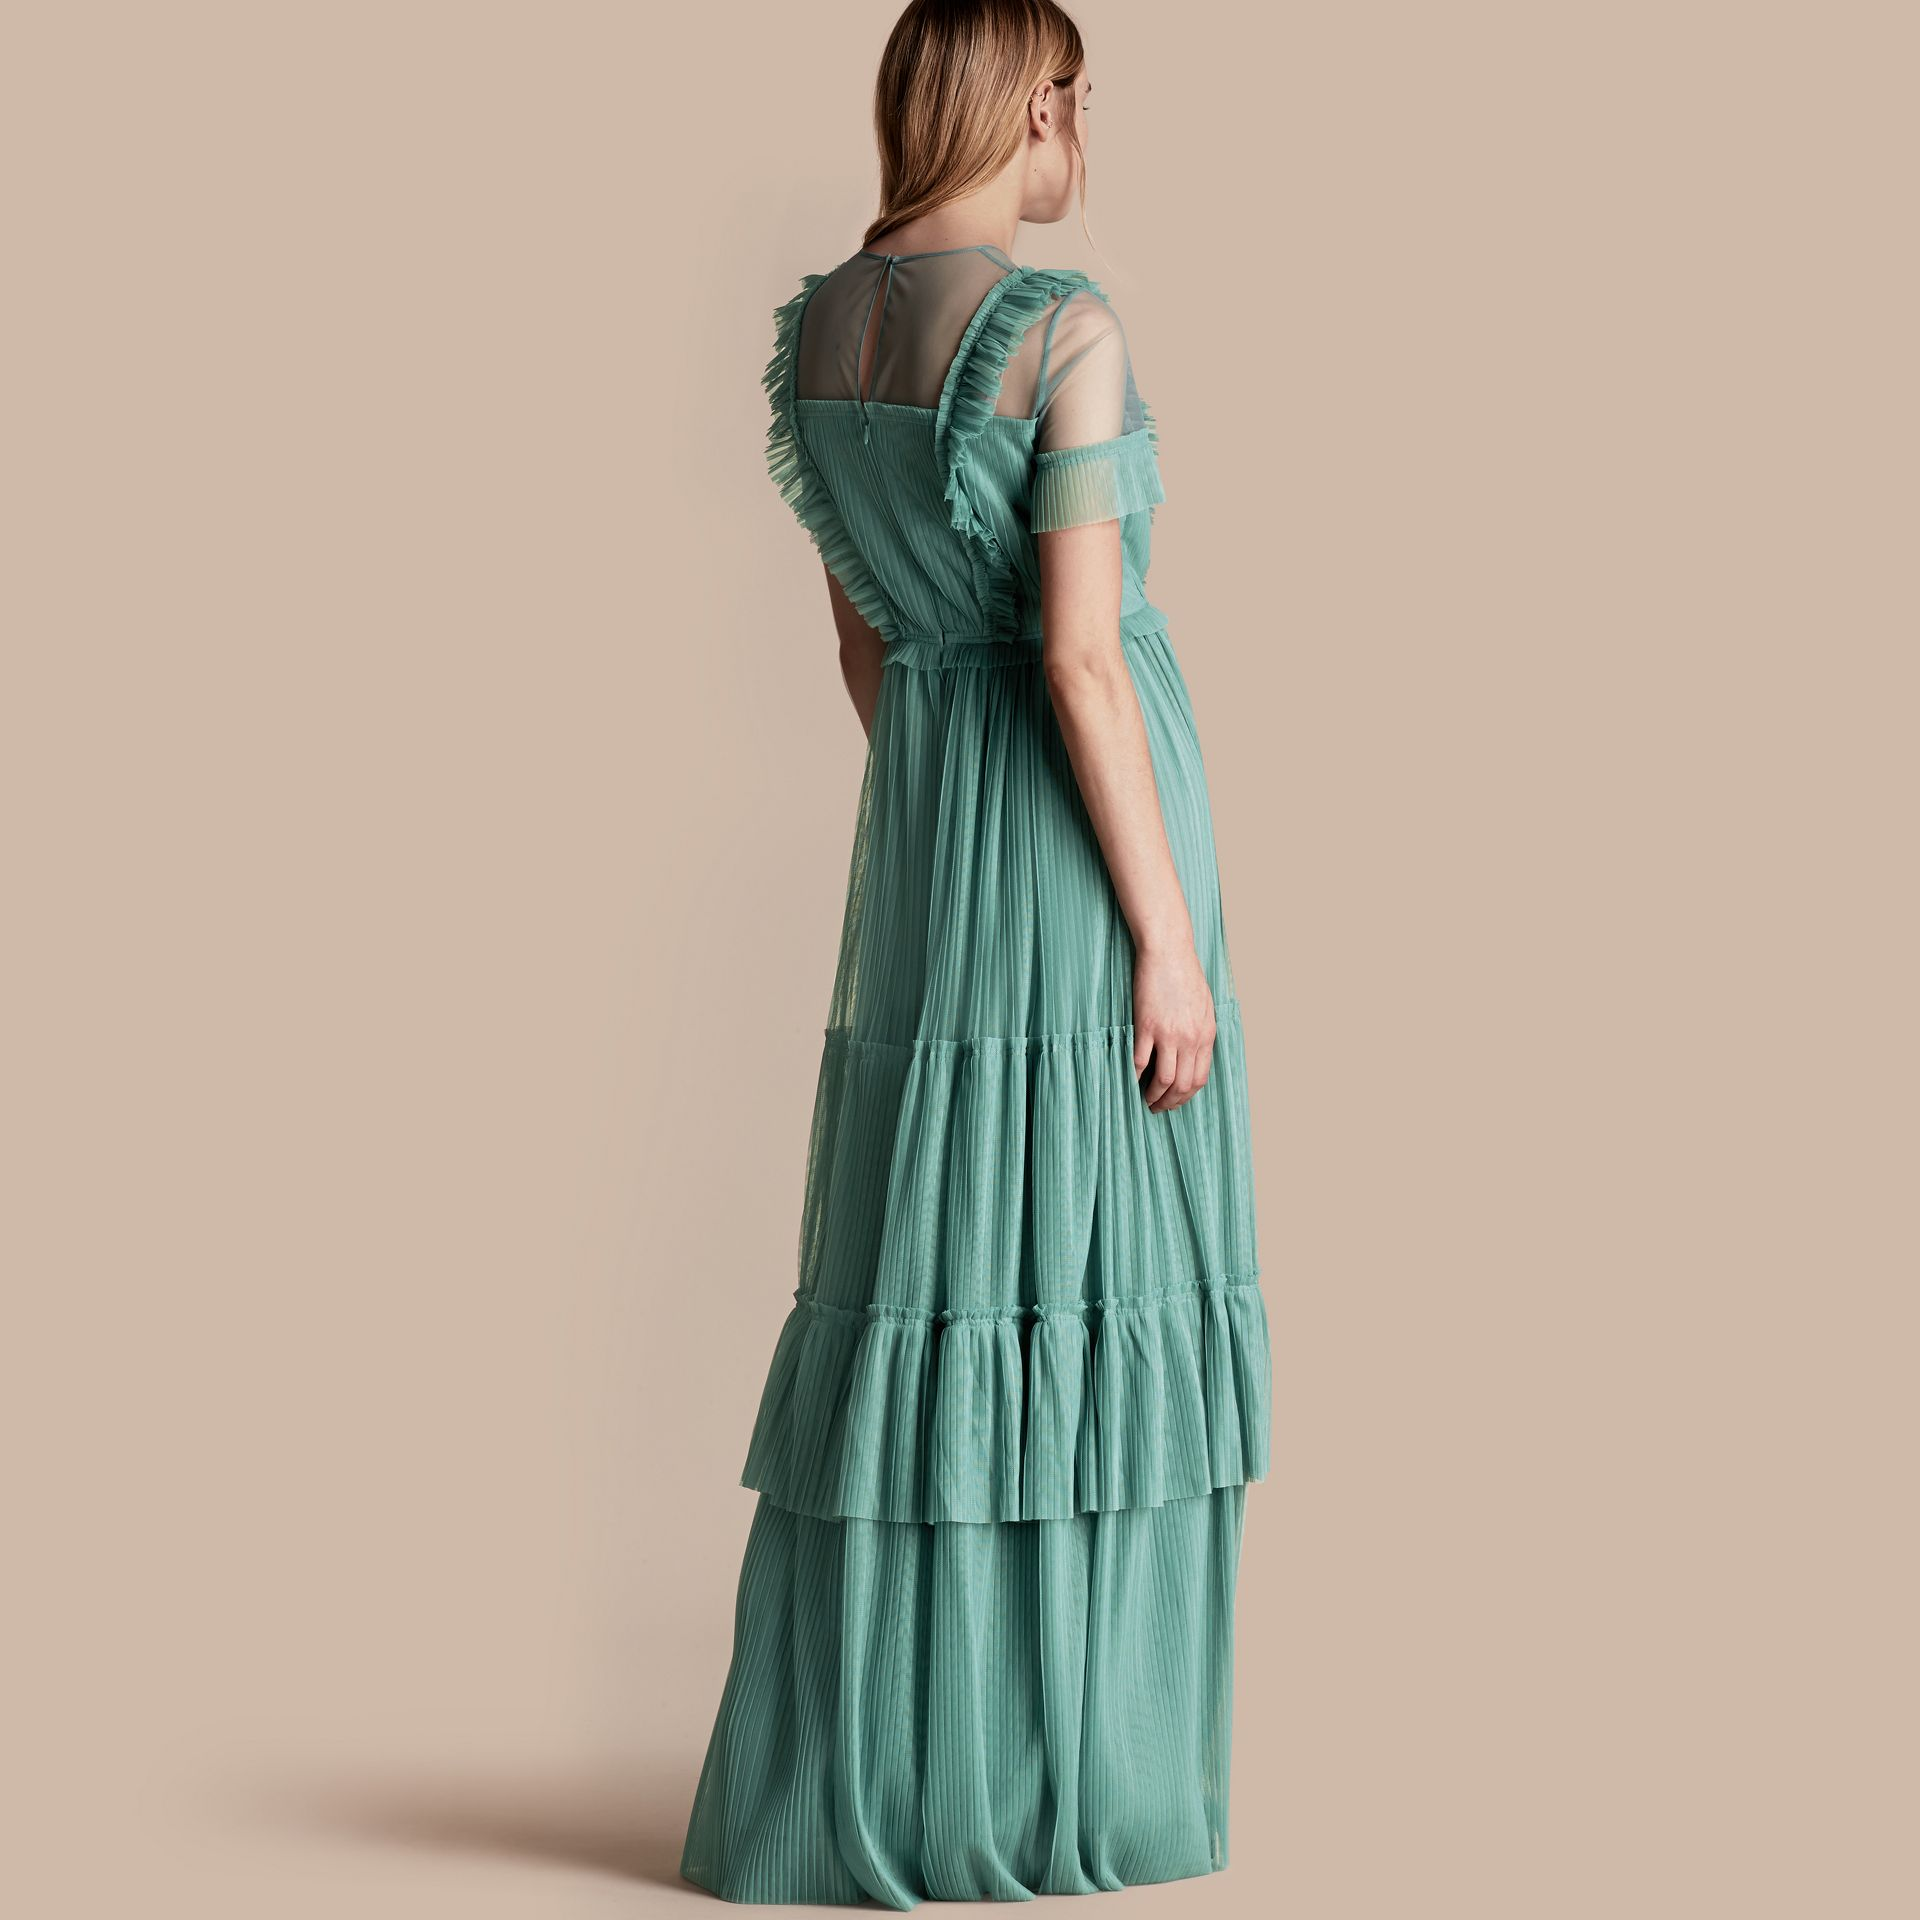 Aqua green Ruffle Detail Floor-length Dress - gallery image 3